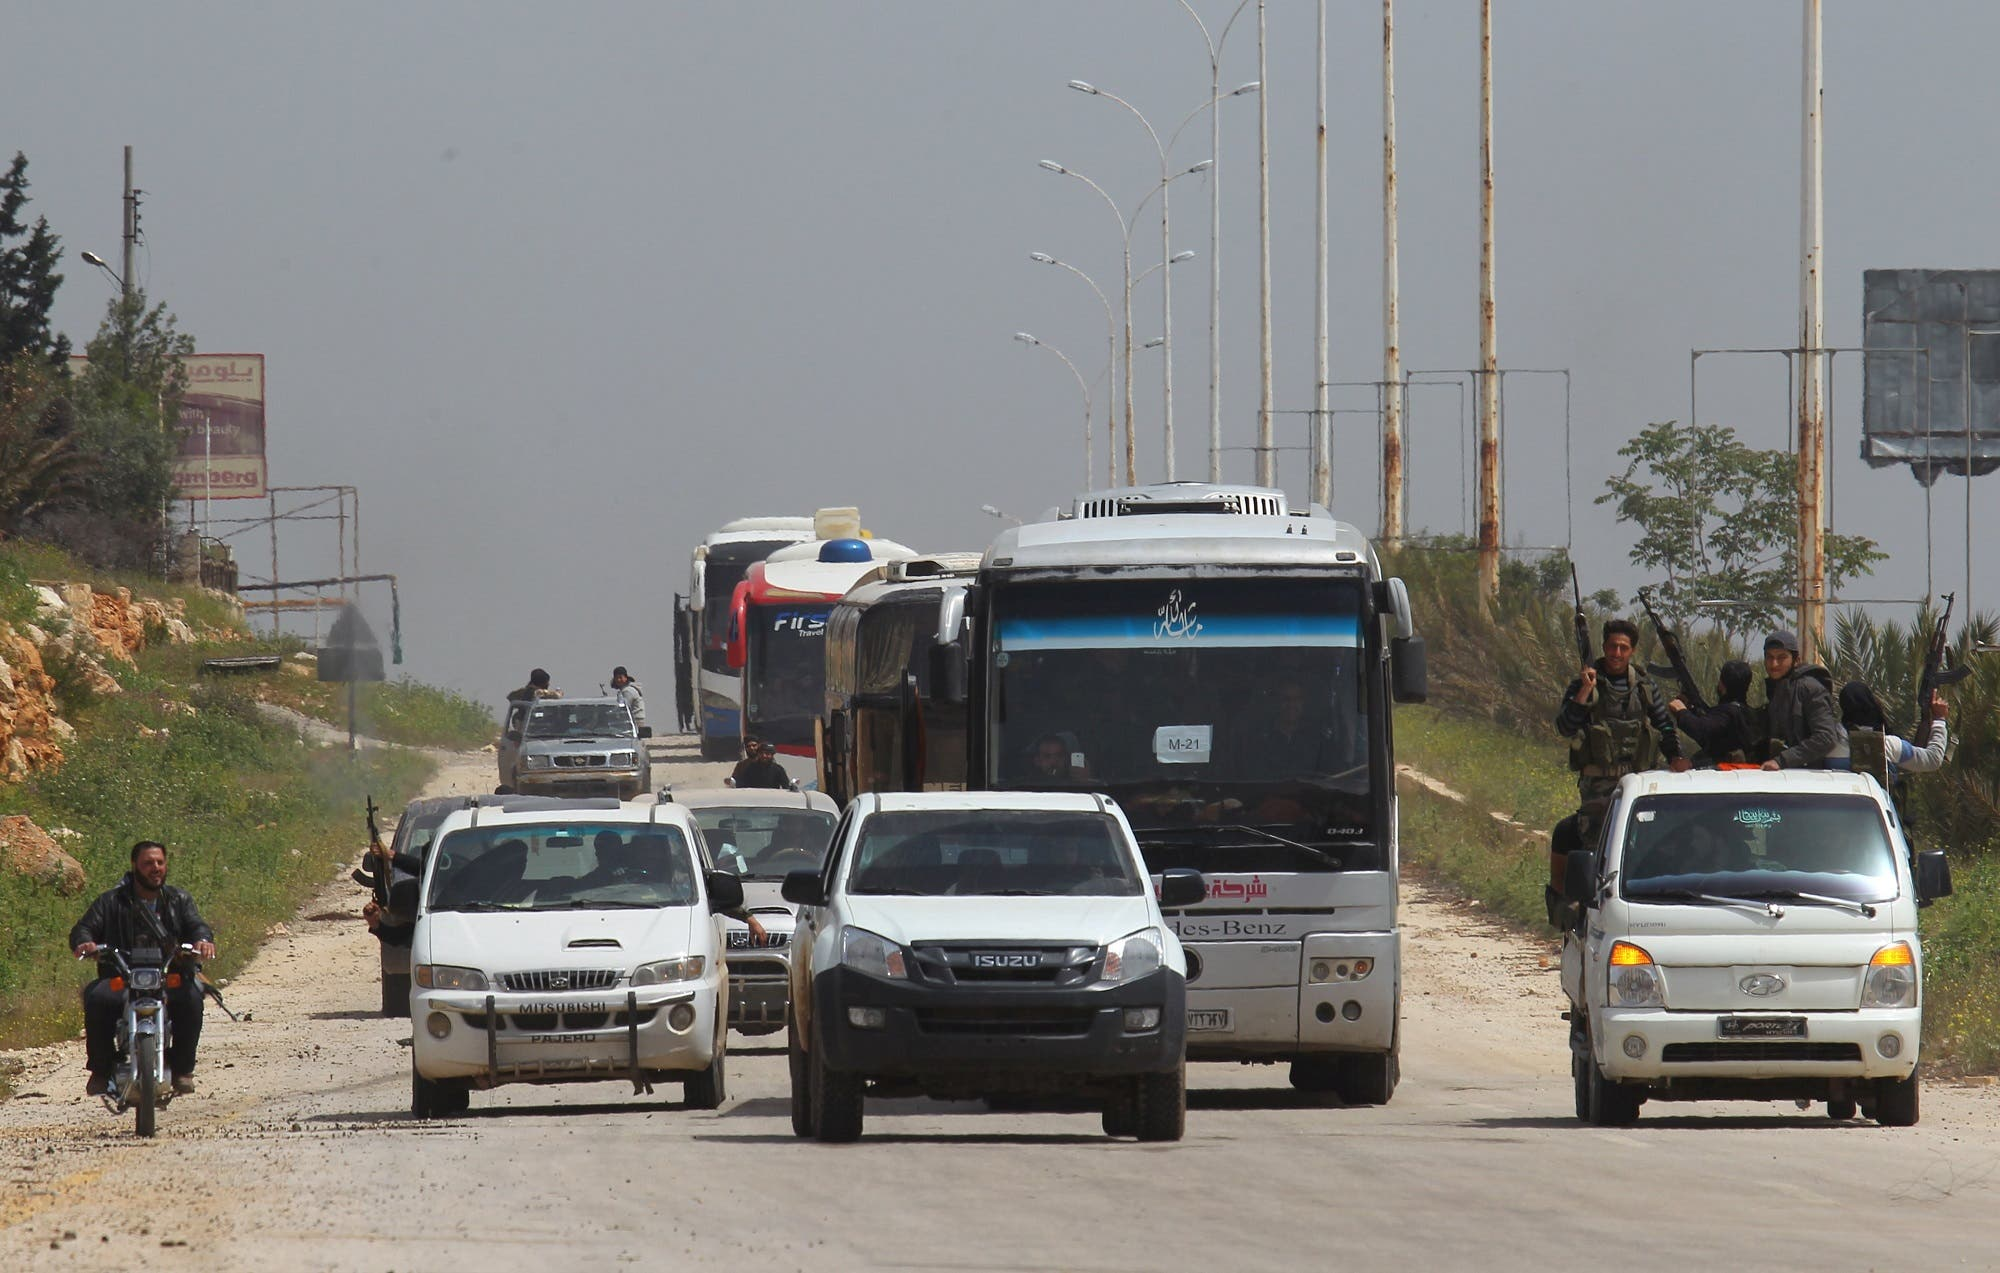 A convoy of buses carrying Sunni rebels and civilians, who were evacuated from Zabadani and Madaya, as part of a reciprocal evacuation deal for four besieged towns, travels towards rebel-held Idlib, Syria April 21, 2017. (Reuters)